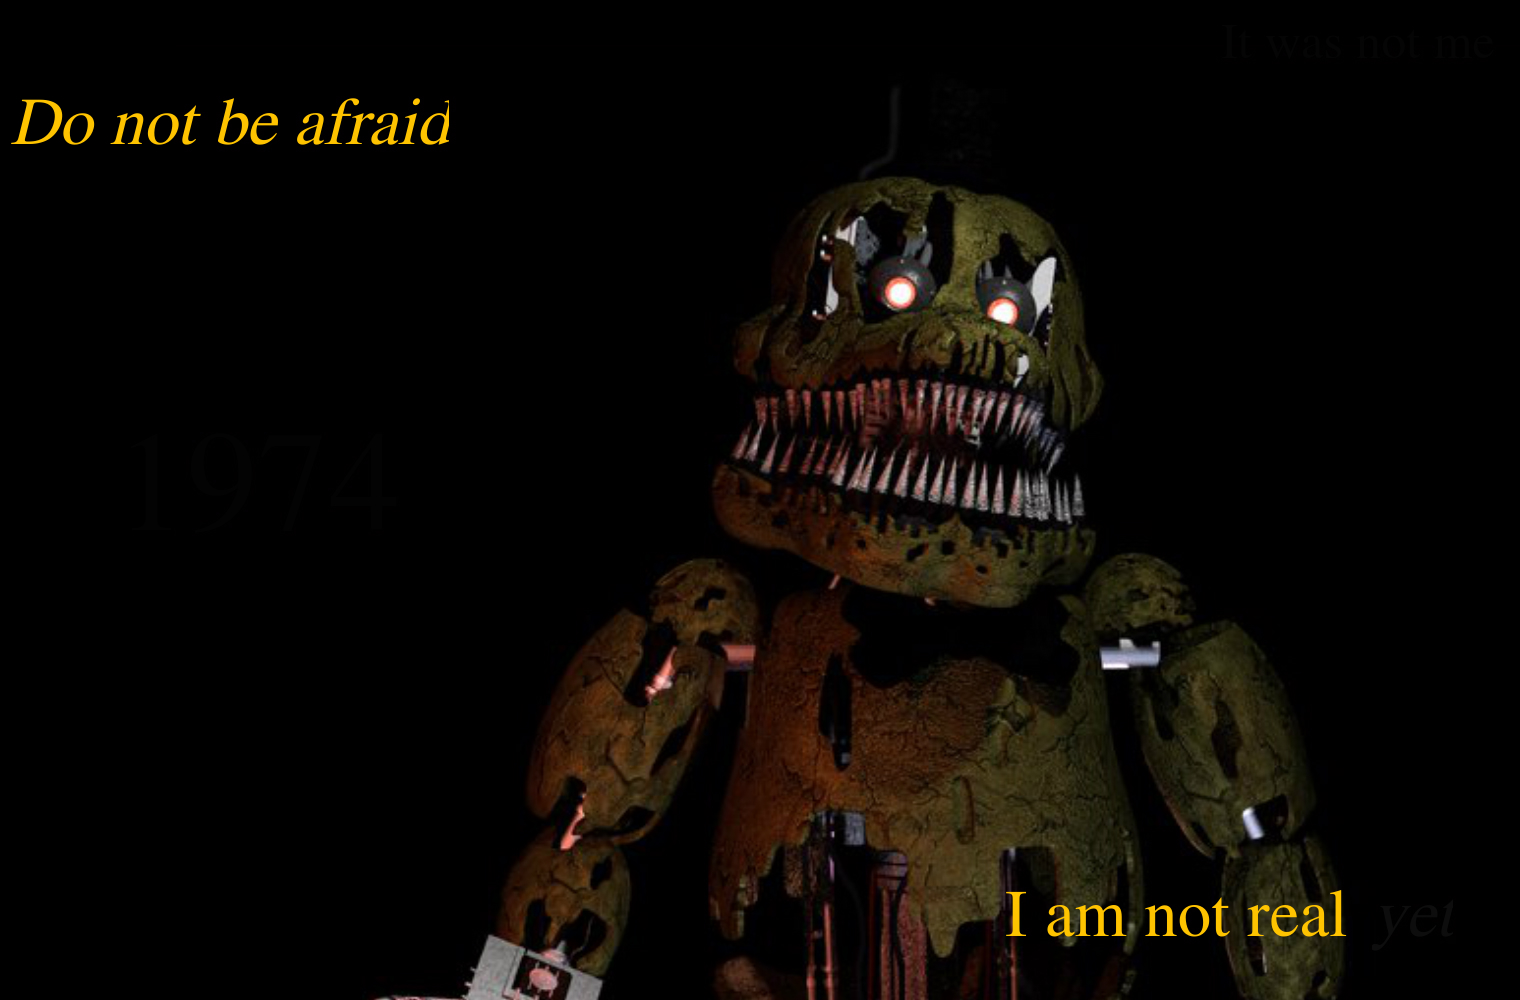 the four restless fears image fnaf fan games and theories indie db